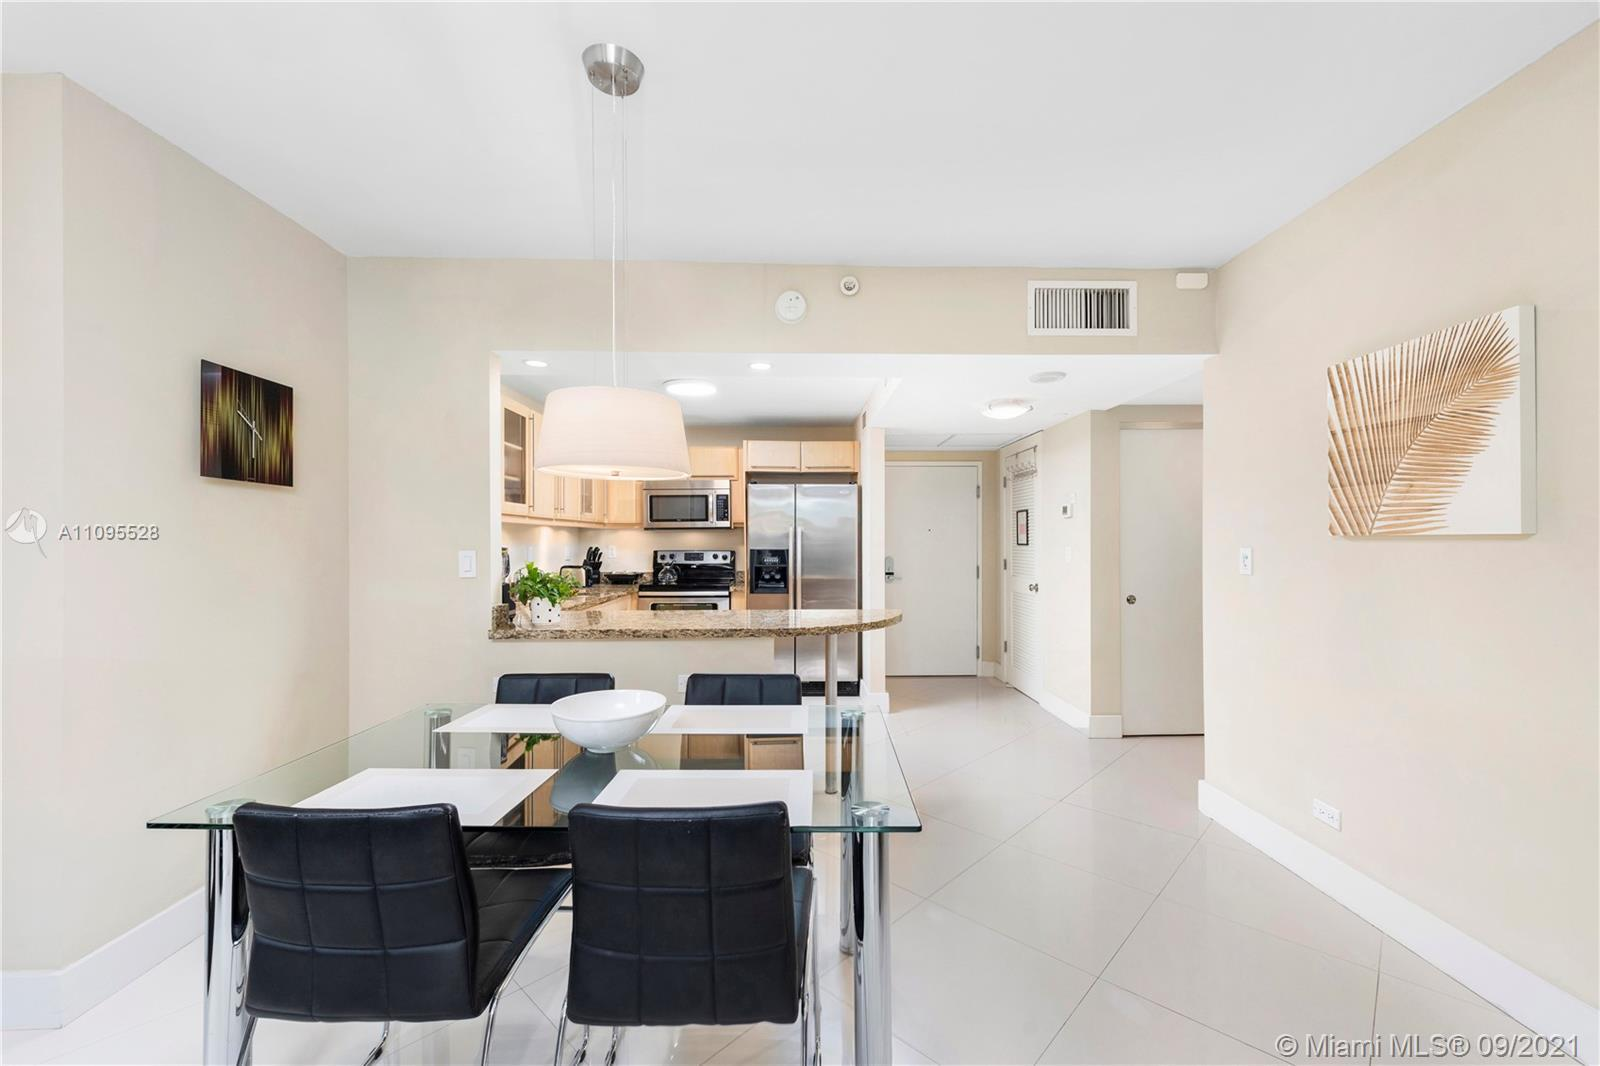 Large 1 bedroom condo with full bath, kitchen, balcony, and impact windows in the oceanfront Roney P